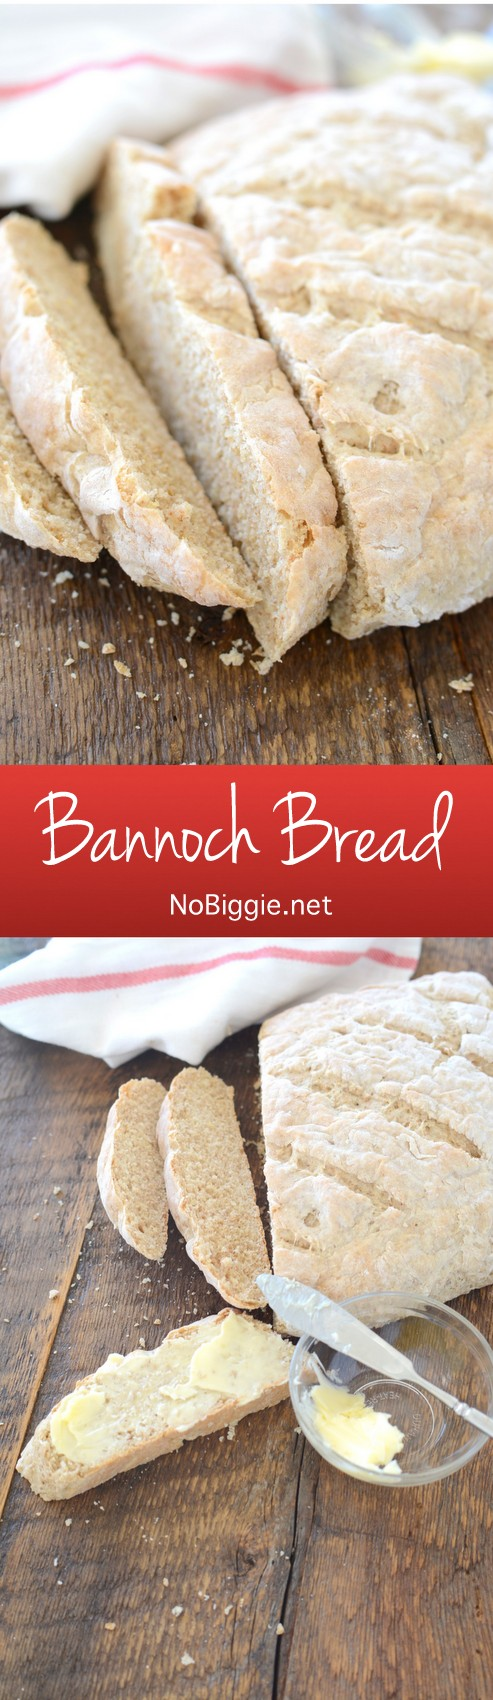 bannoch bread recipe | this bread is so good! (no yeast required) | NoBiggie.net